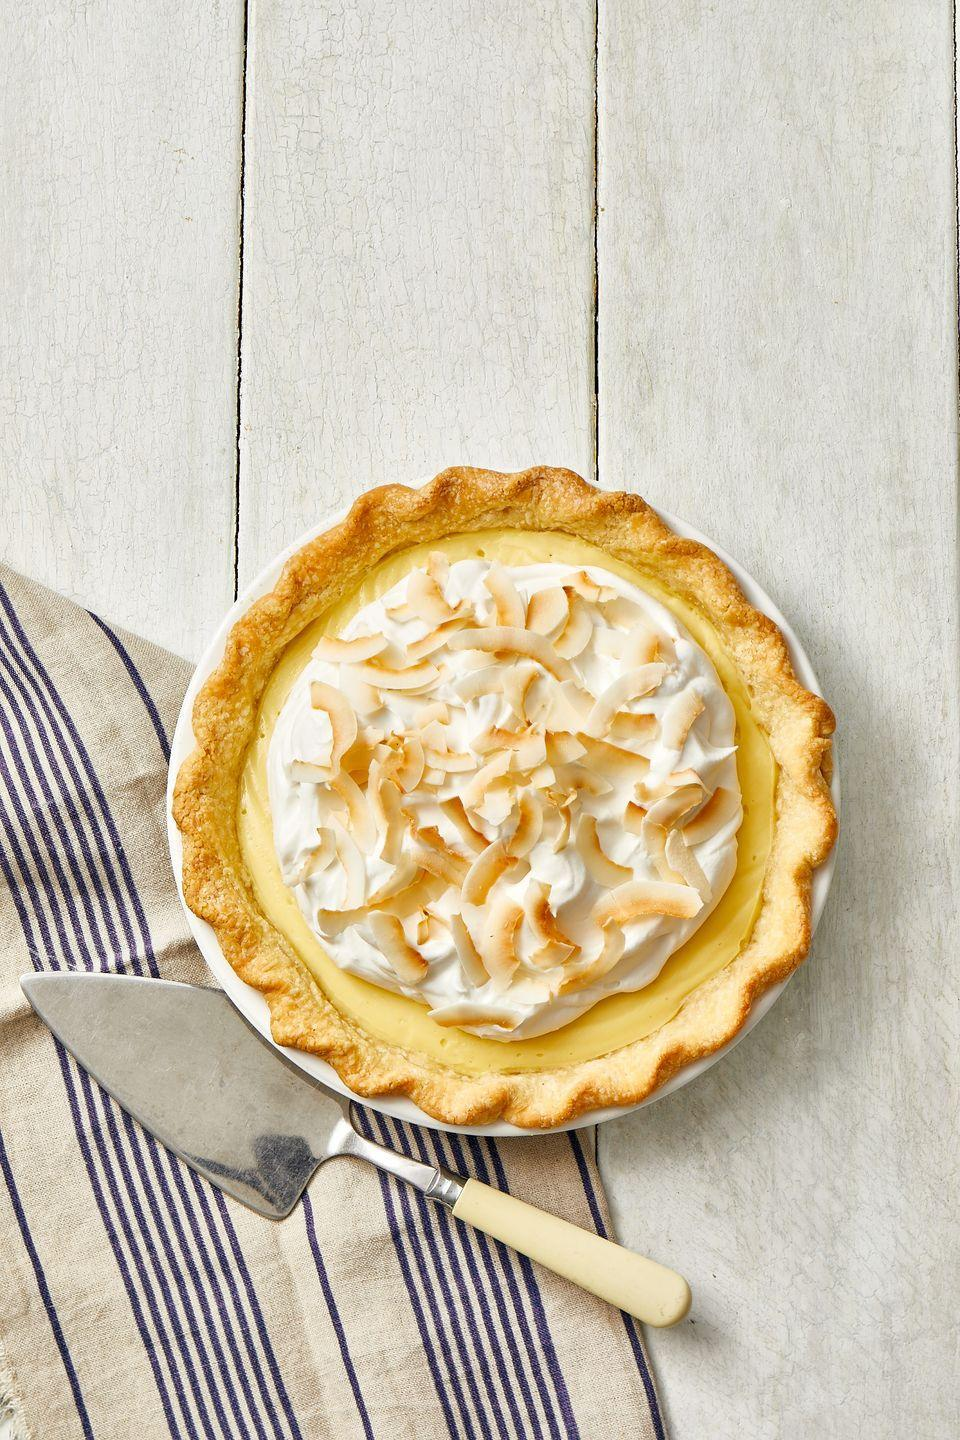 "<p>Coconut cream pie is the stuff that dreams are made of: Crispy, flaky pie crust filled with a thick, creamy coconut custard and topped with mounds of homemade whipped cream. Yes, please!</p><p><em><a href=""https://www.goodhousekeeping.com/food-recipes/a35433240/coconut-cream-pie-recipe/"" rel=""nofollow noopener"" target=""_blank"" data-ylk=""slk:Get the recipe for Coconut Cream Pie »"" class=""link rapid-noclick-resp"">Get the recipe for Coconut Cream Pie »</a></em></p>"